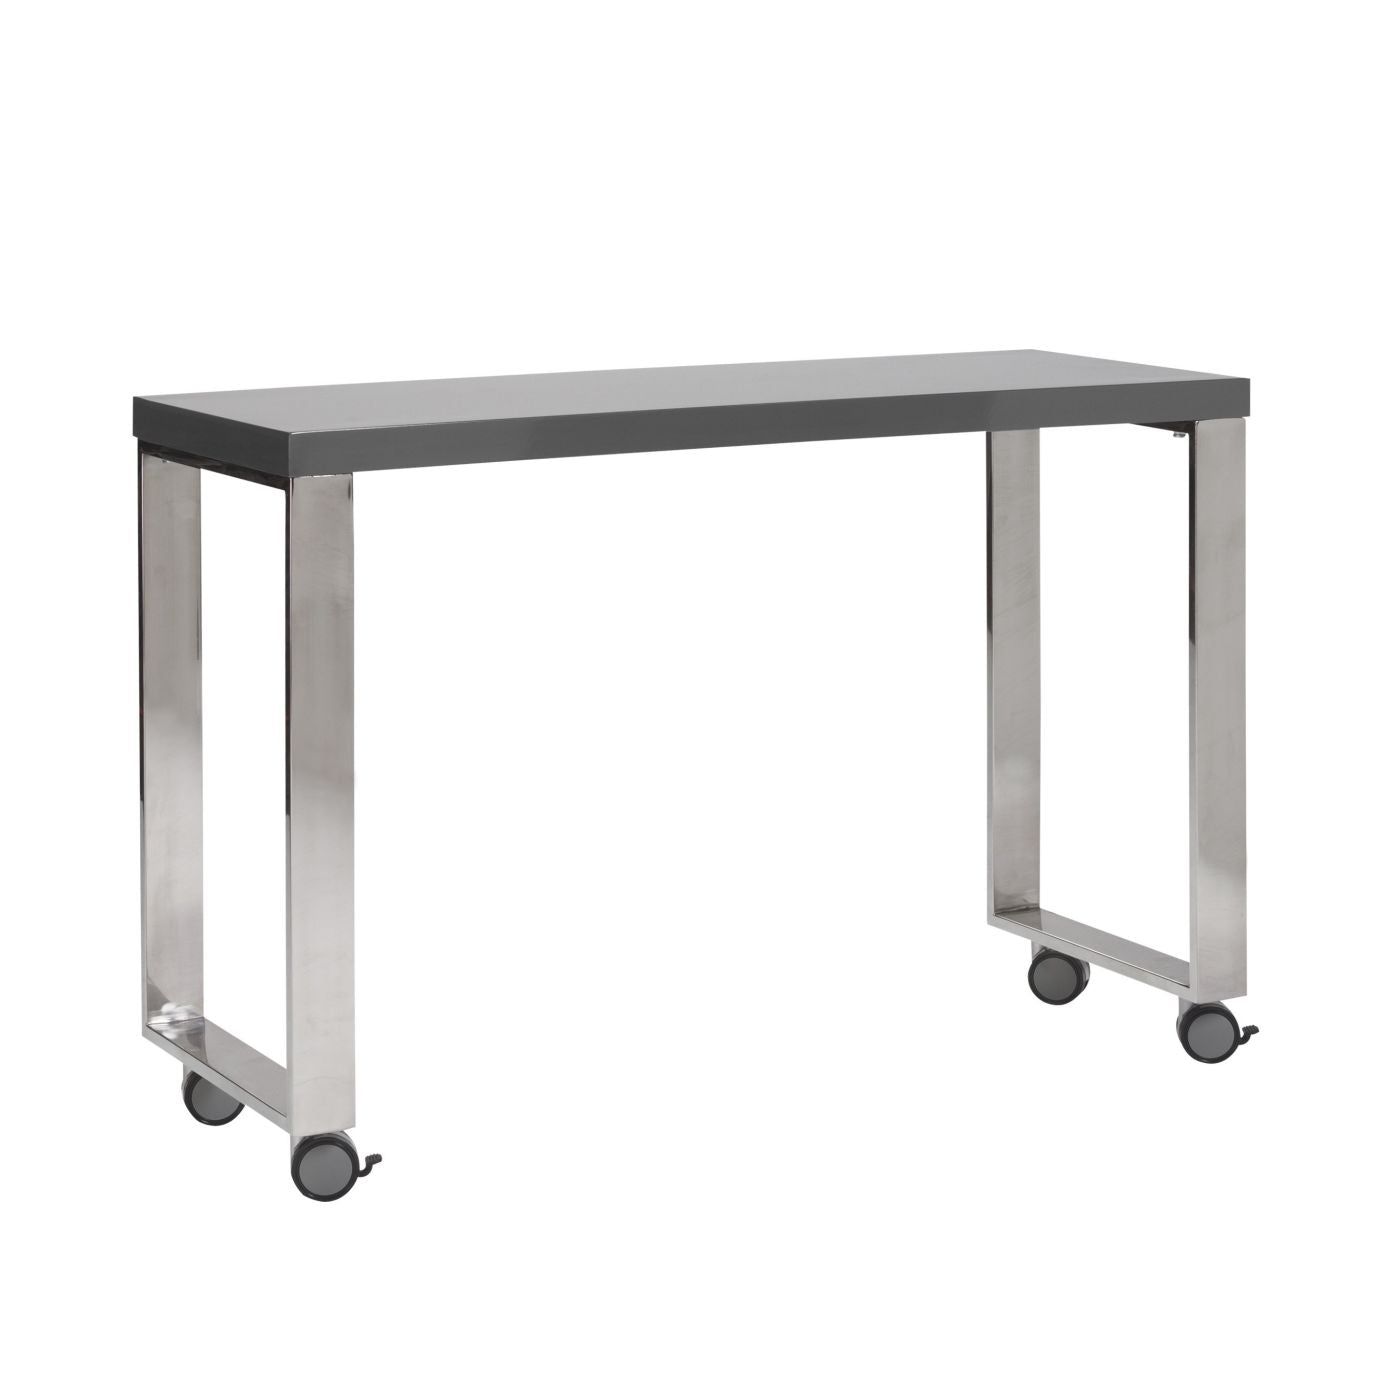 ... Dillon 40 Side Return In High Gloss Gray And Polished Stainless Steel  Office Desk ...